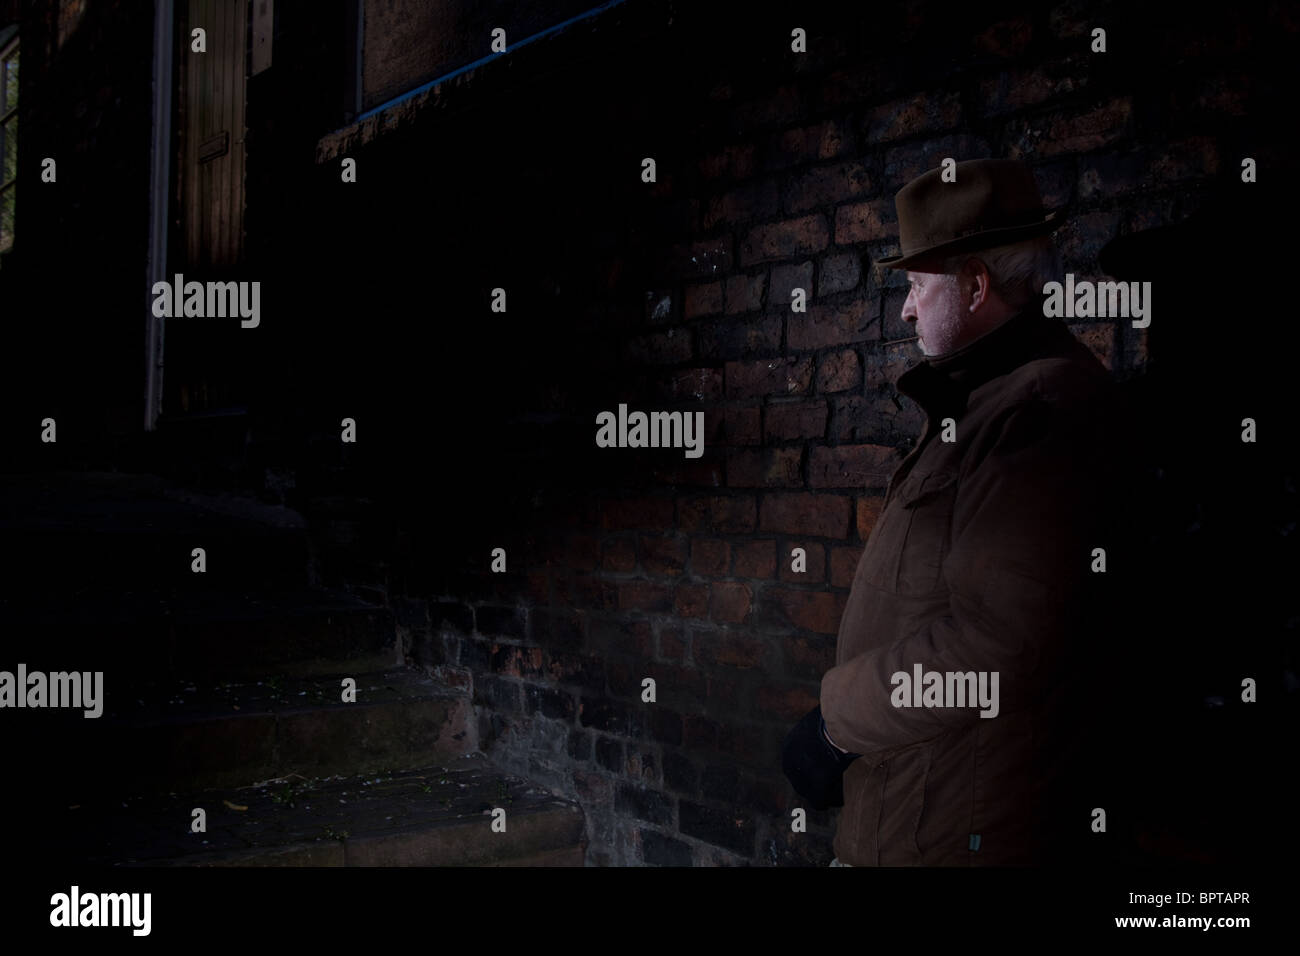 Film Noir depicting a quiet and dangerous man waiting in a darkened alley. - Stock Image